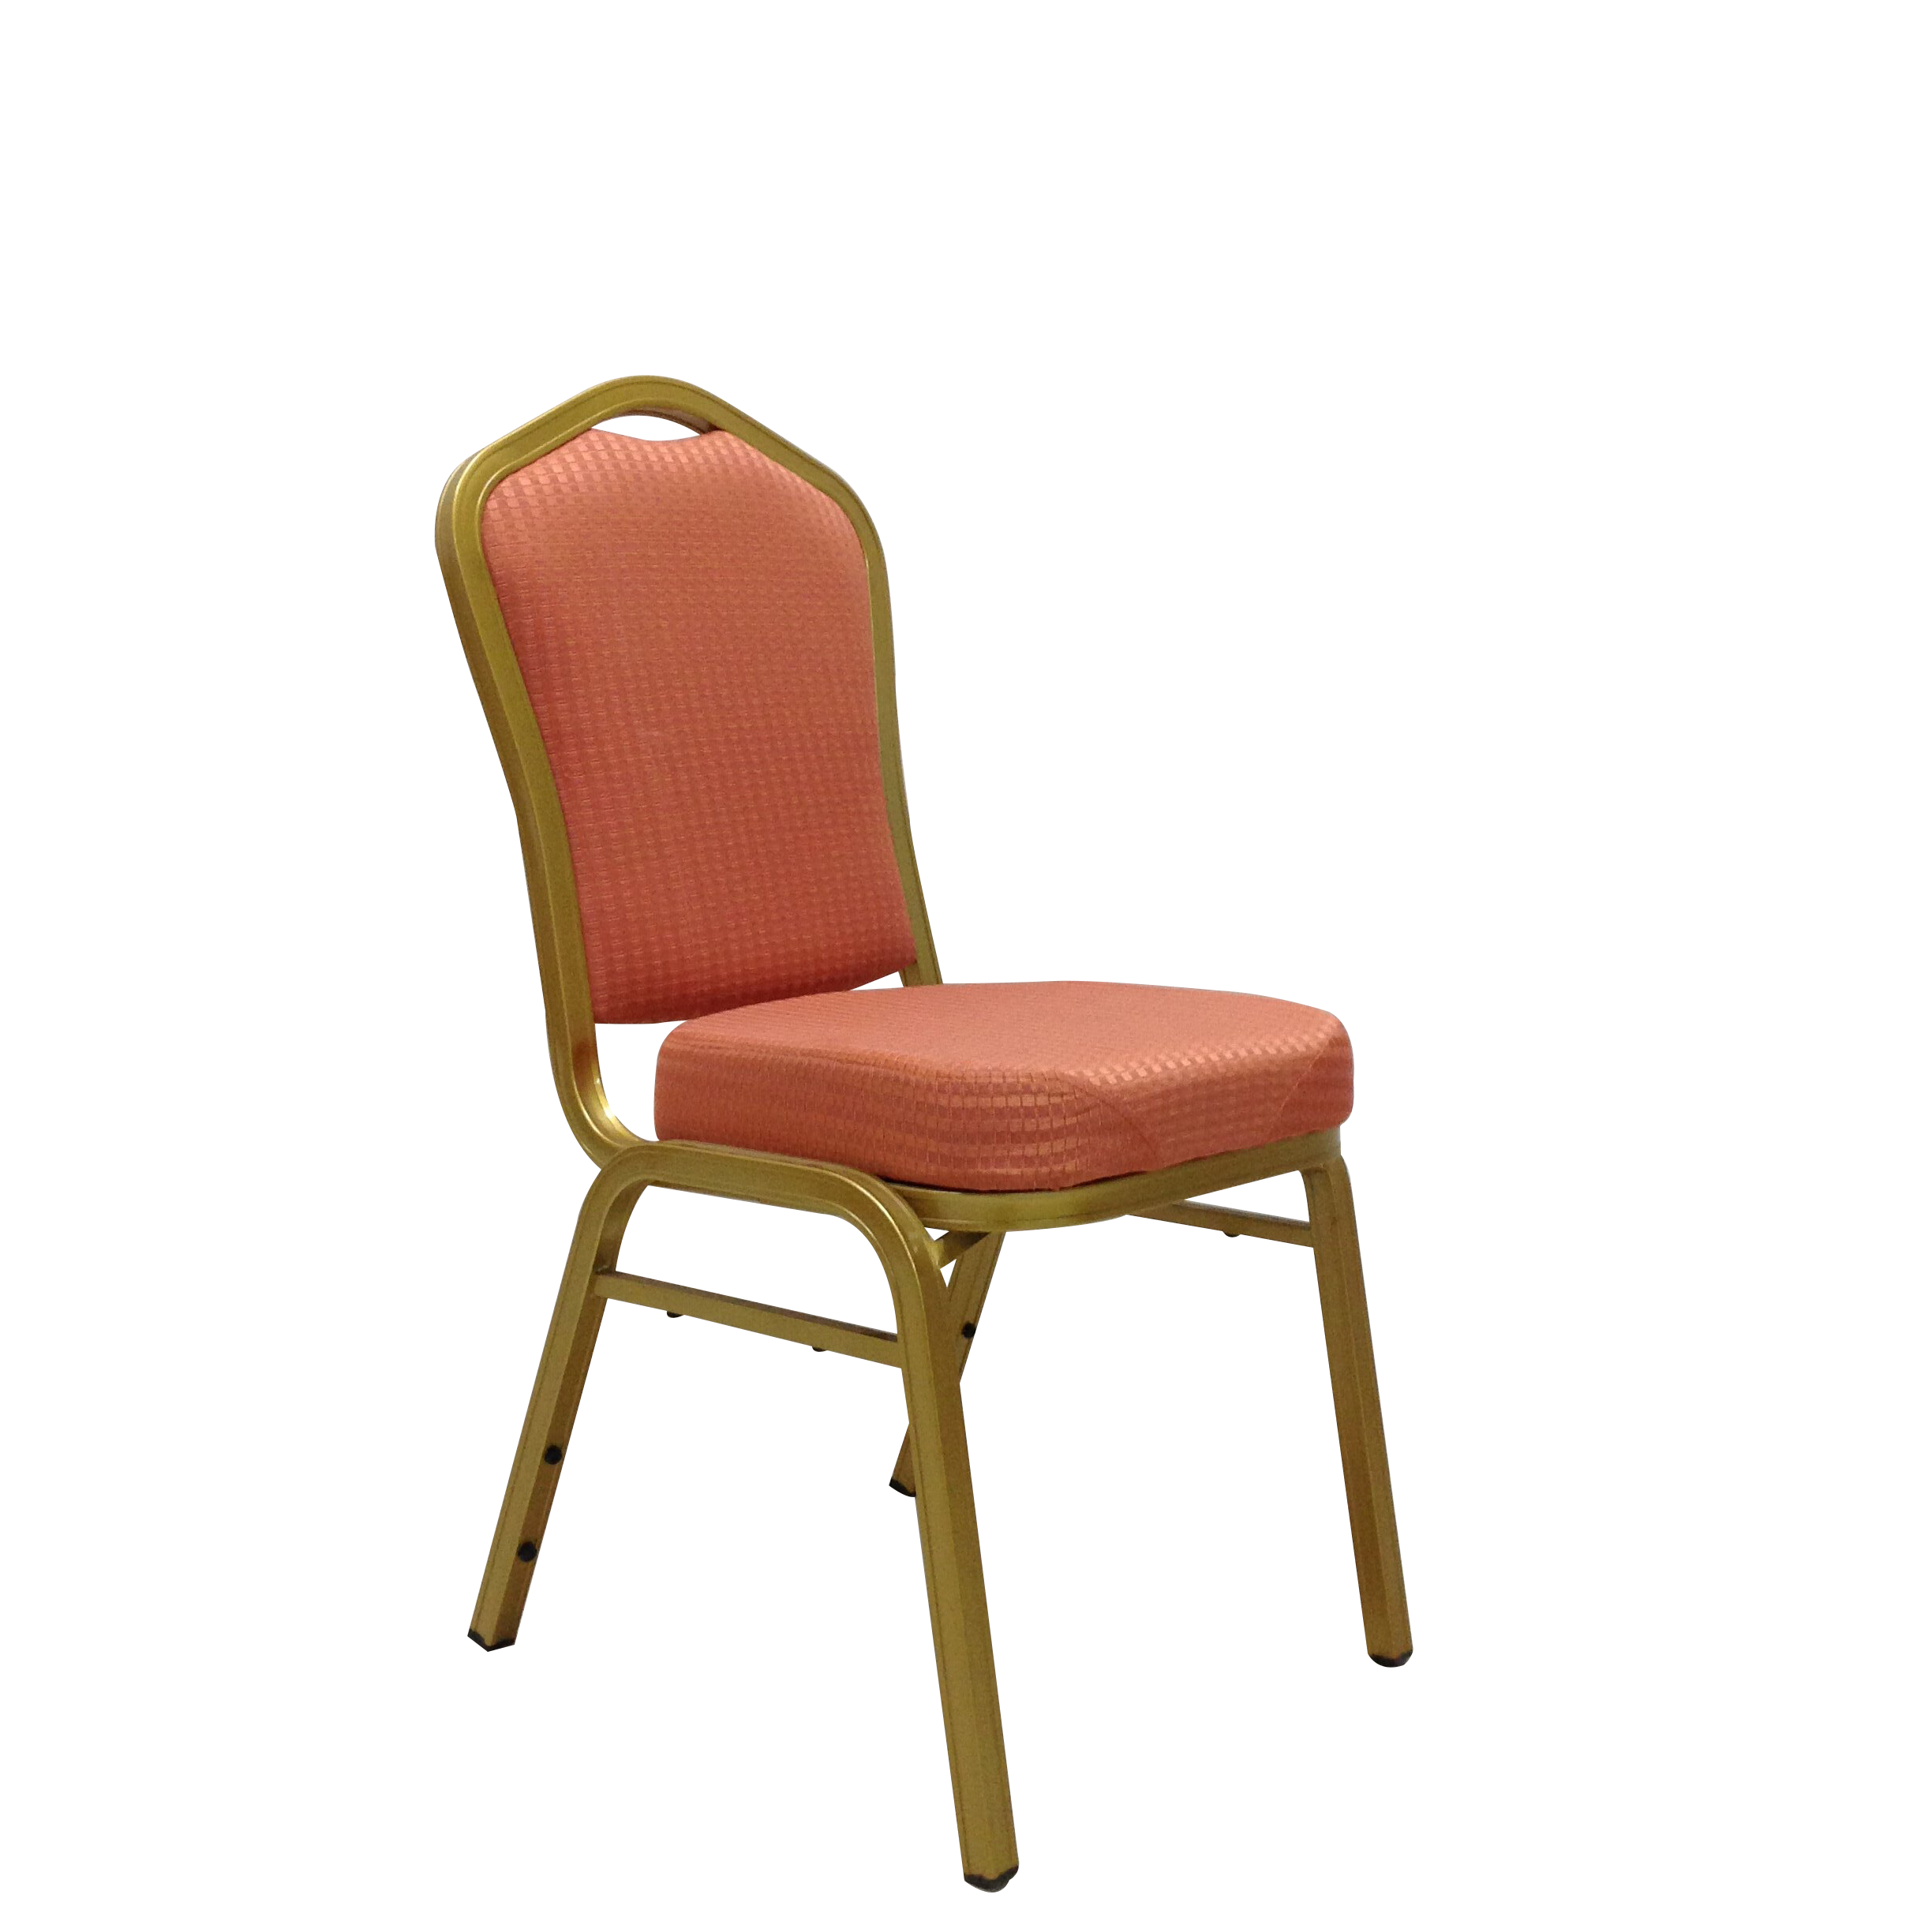 Super Lowest Price Church Chairs With Armrest And Kneelers - Aluminium Banqueting Chairs SF-L23 – Jiangchang Furniture Featured Image